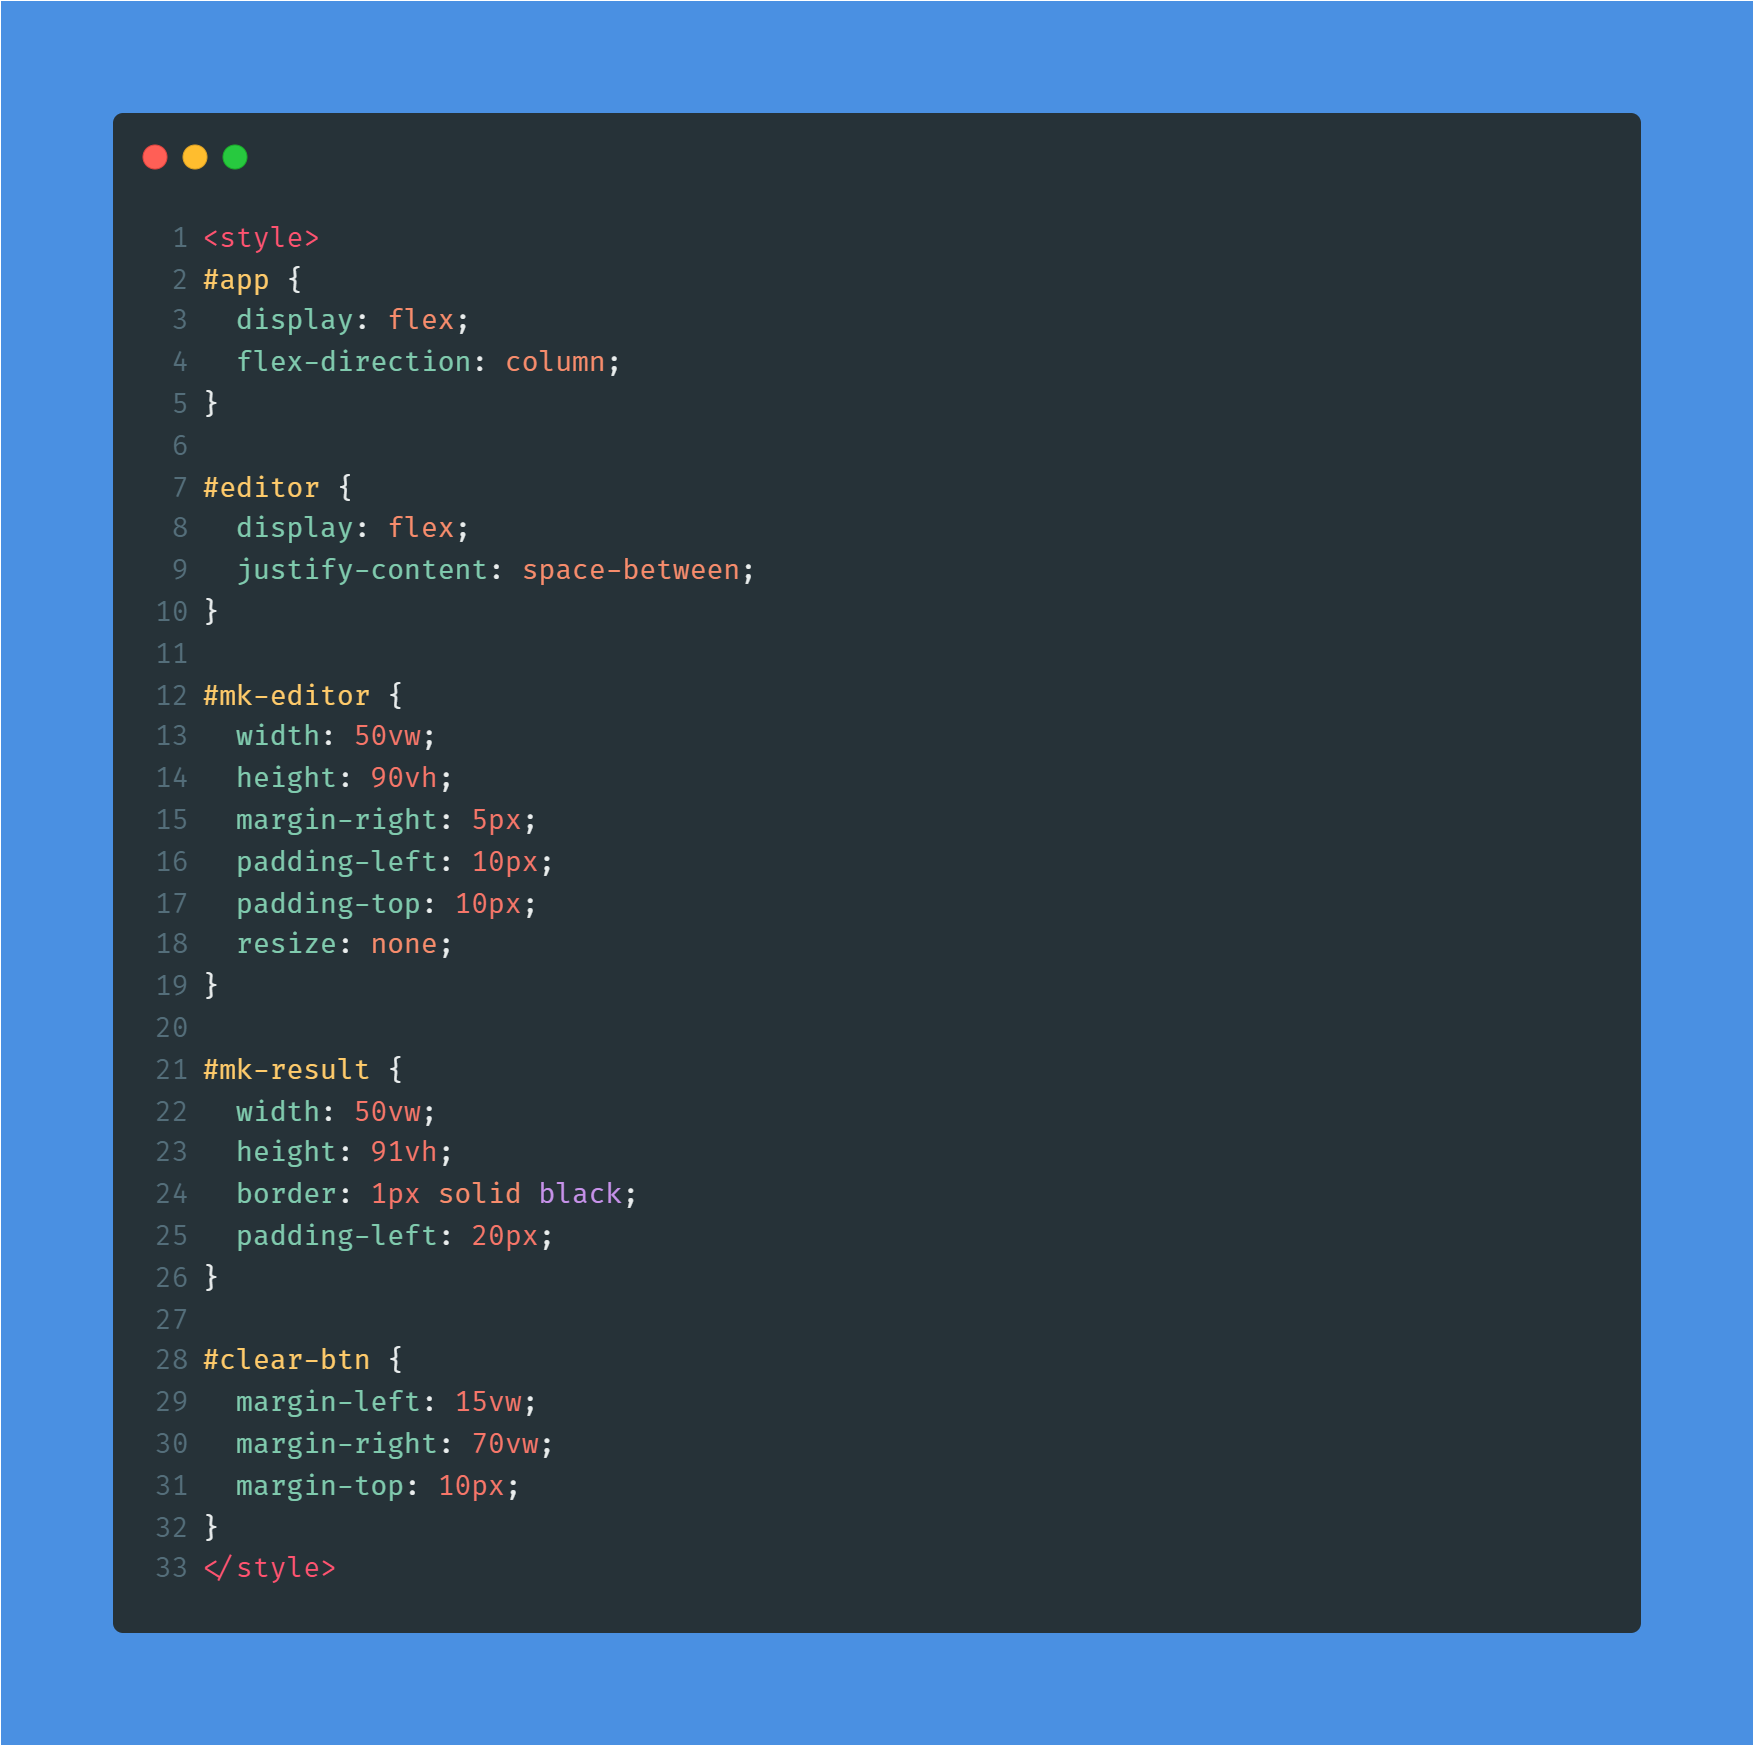 CSS styling for the editor